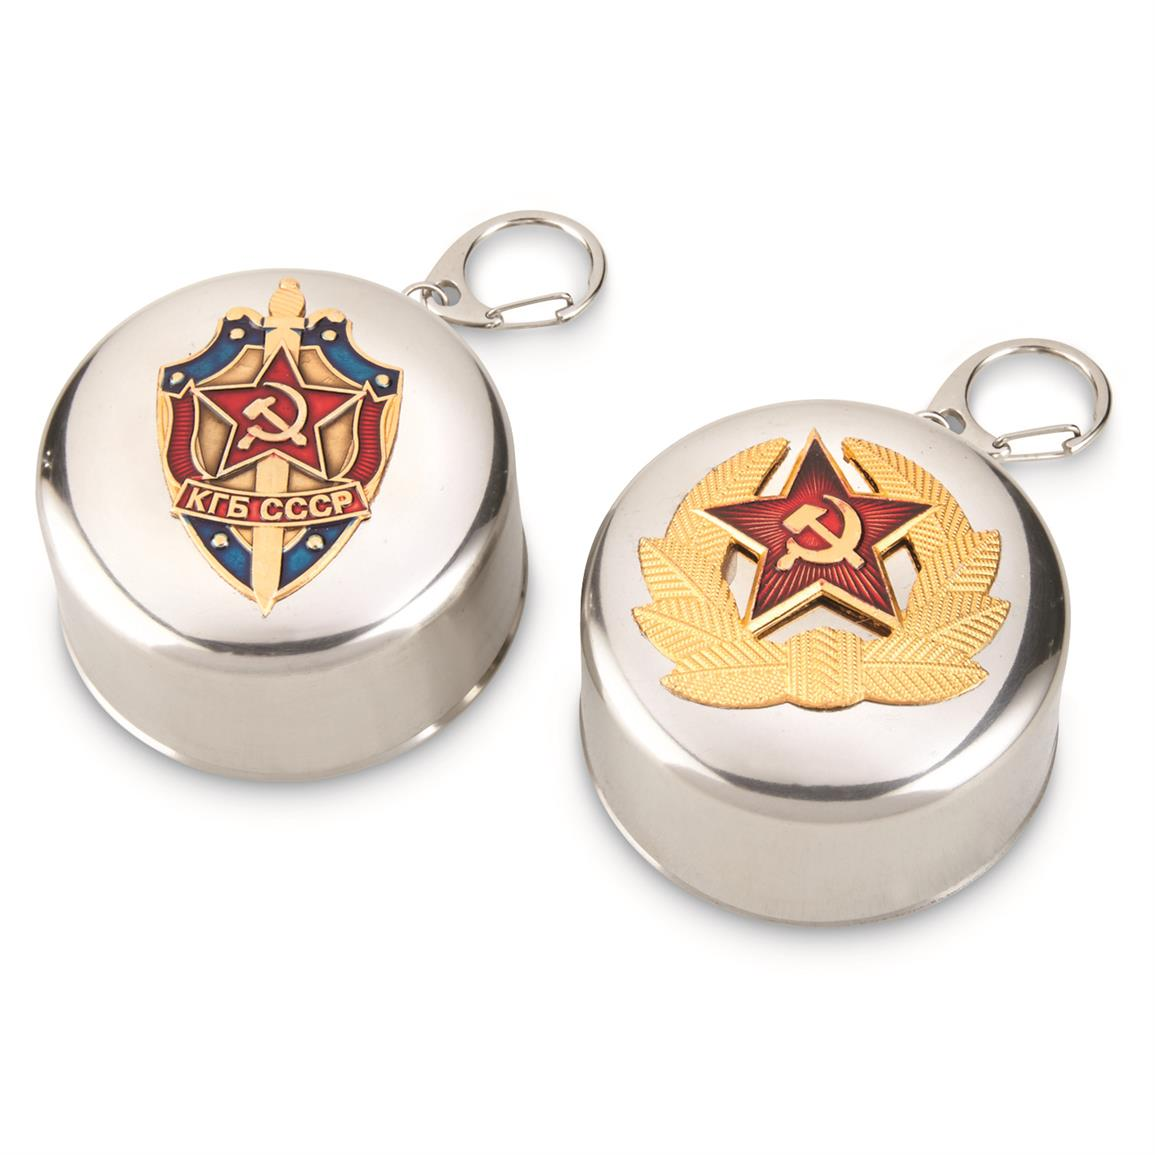 Soviet-Russian Stainless Steel Folding Cups, 2 Pack, New